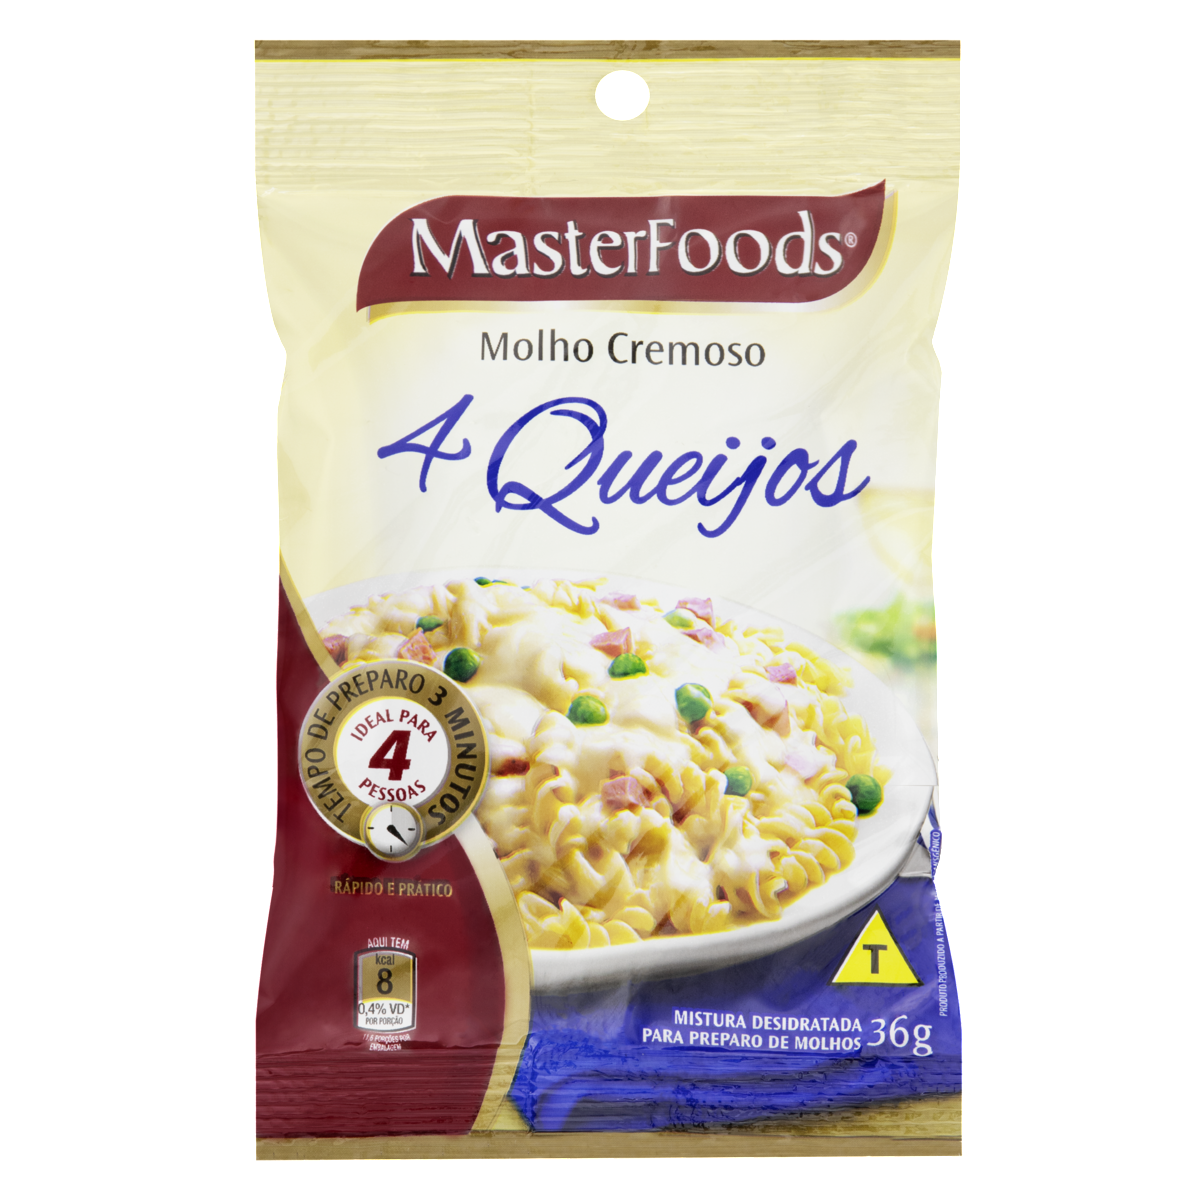 7896029027585 - MOLHO CREMOSO 4 QUEIJOS MASTERFOODS PACOTE 36G